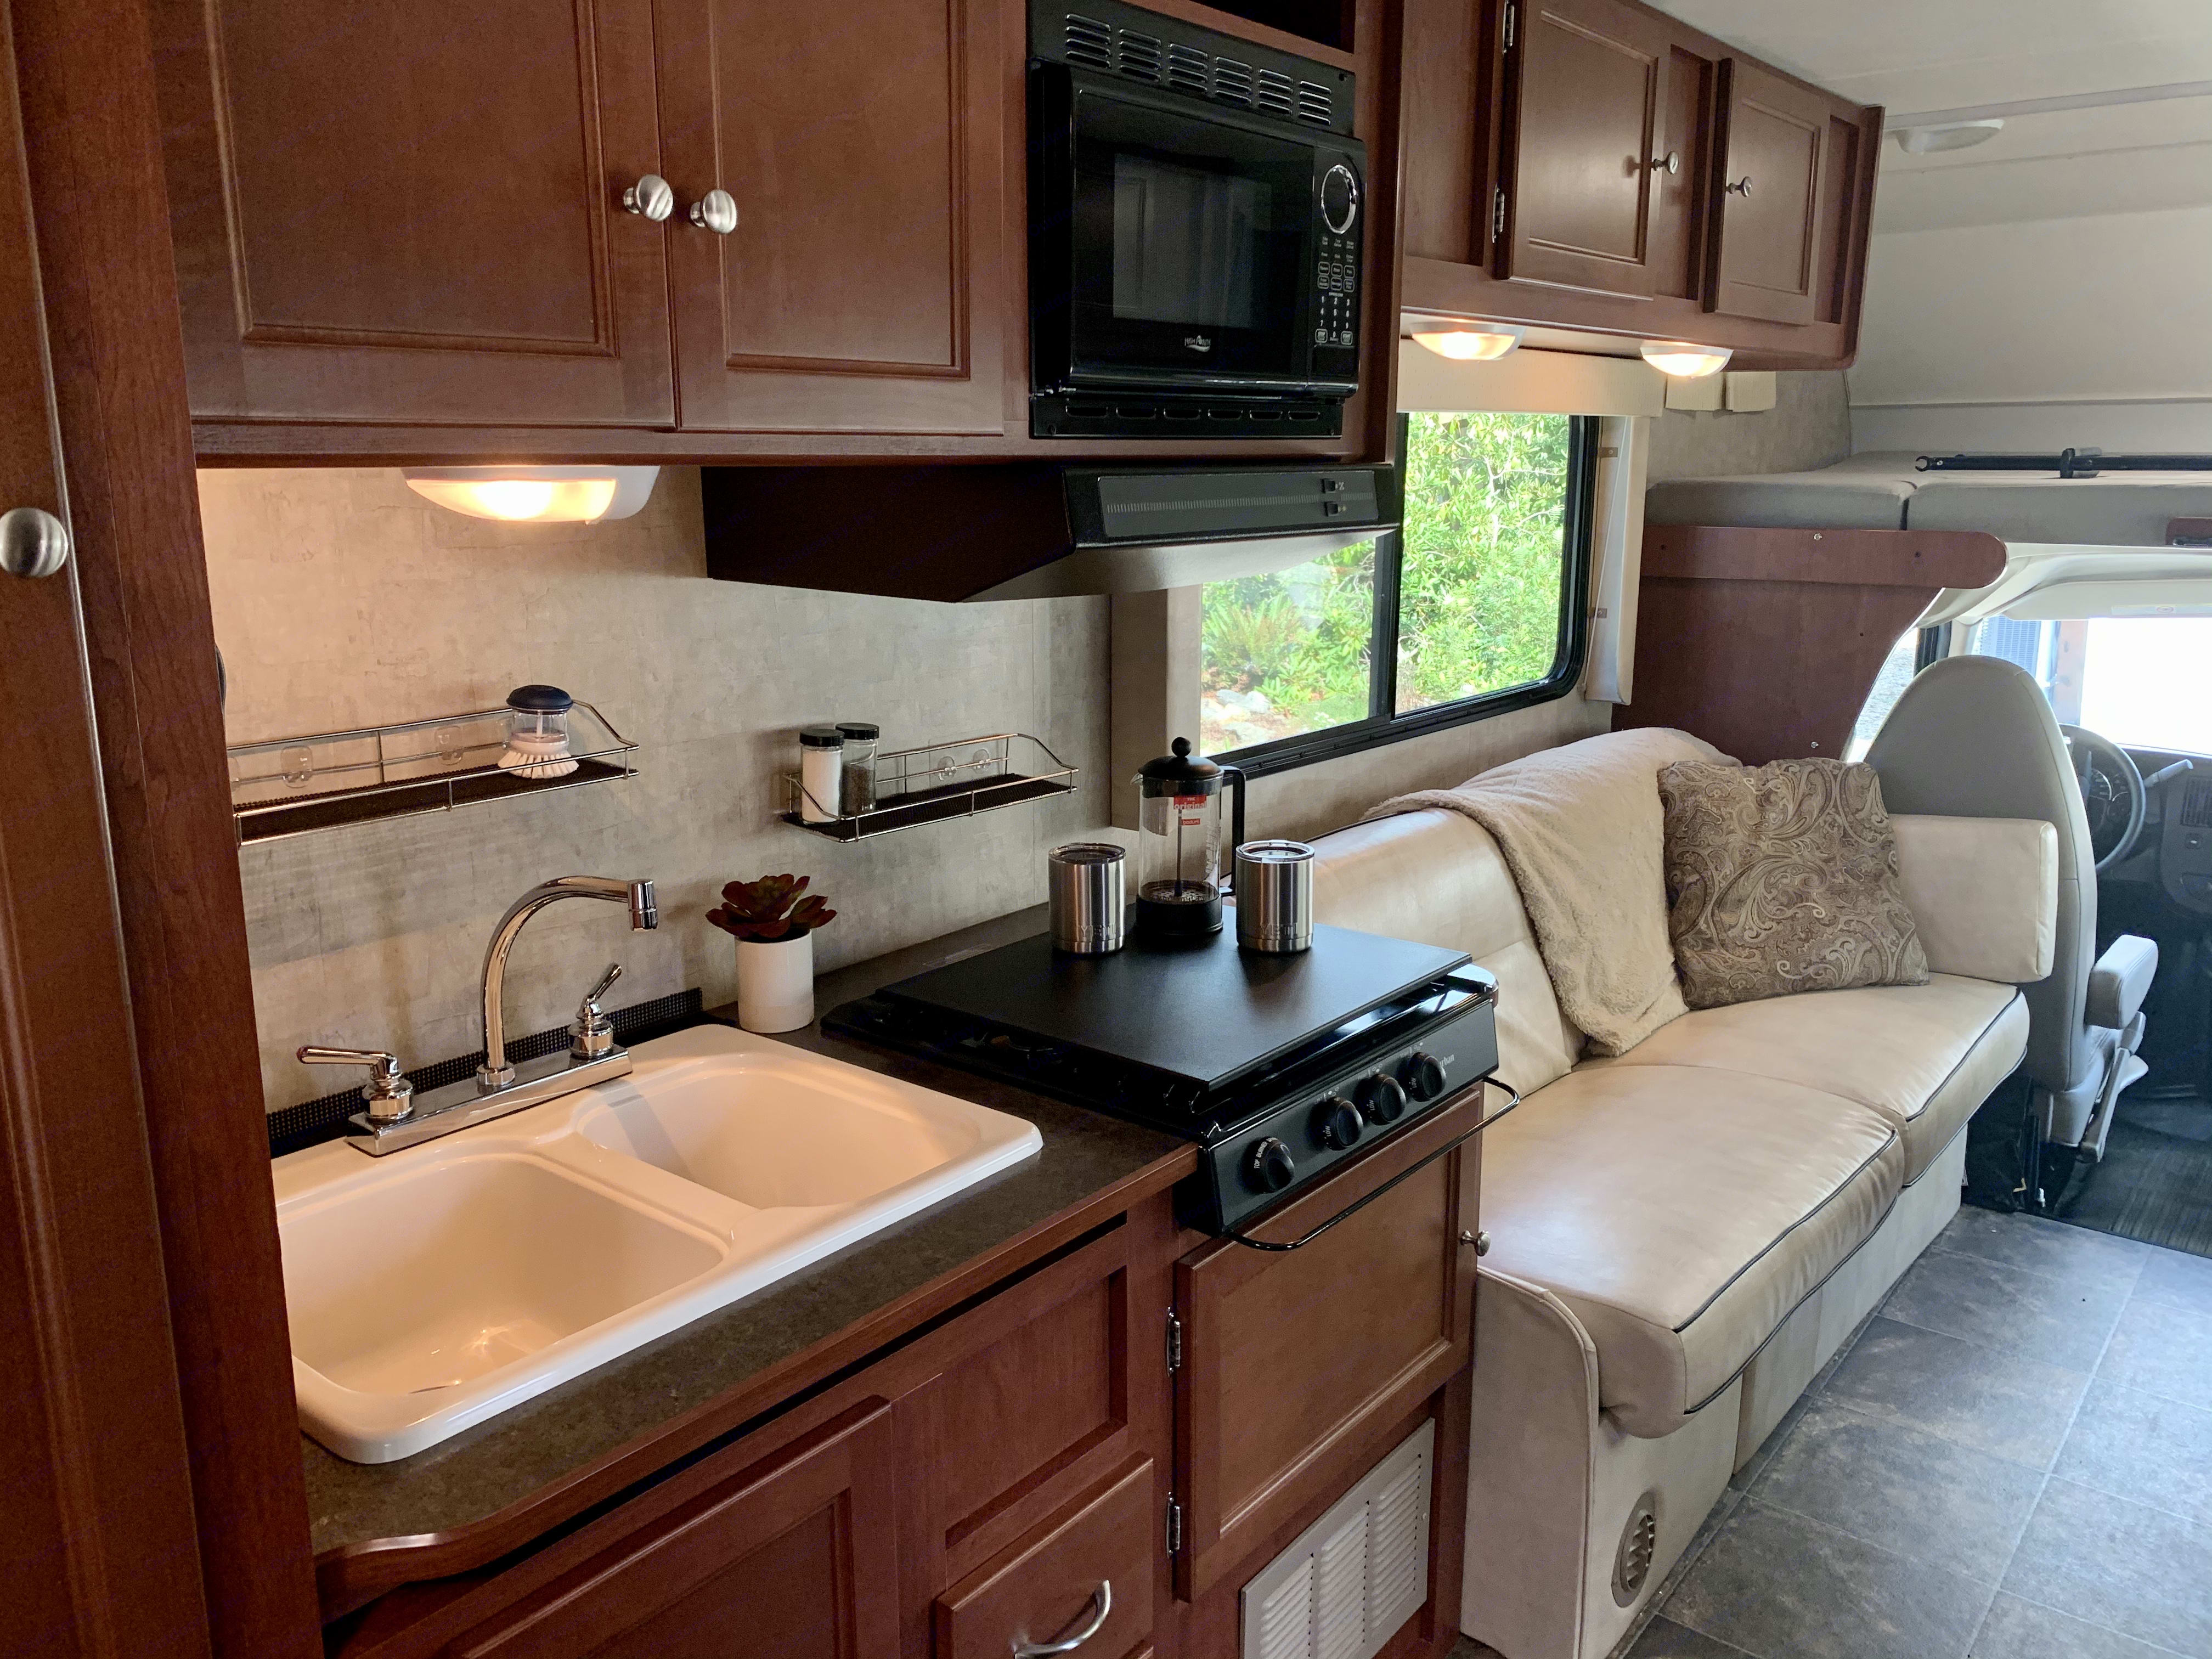 Kitchen - the stove has a cover to create more counter top space. Winnebago Minnie Winnie 2014